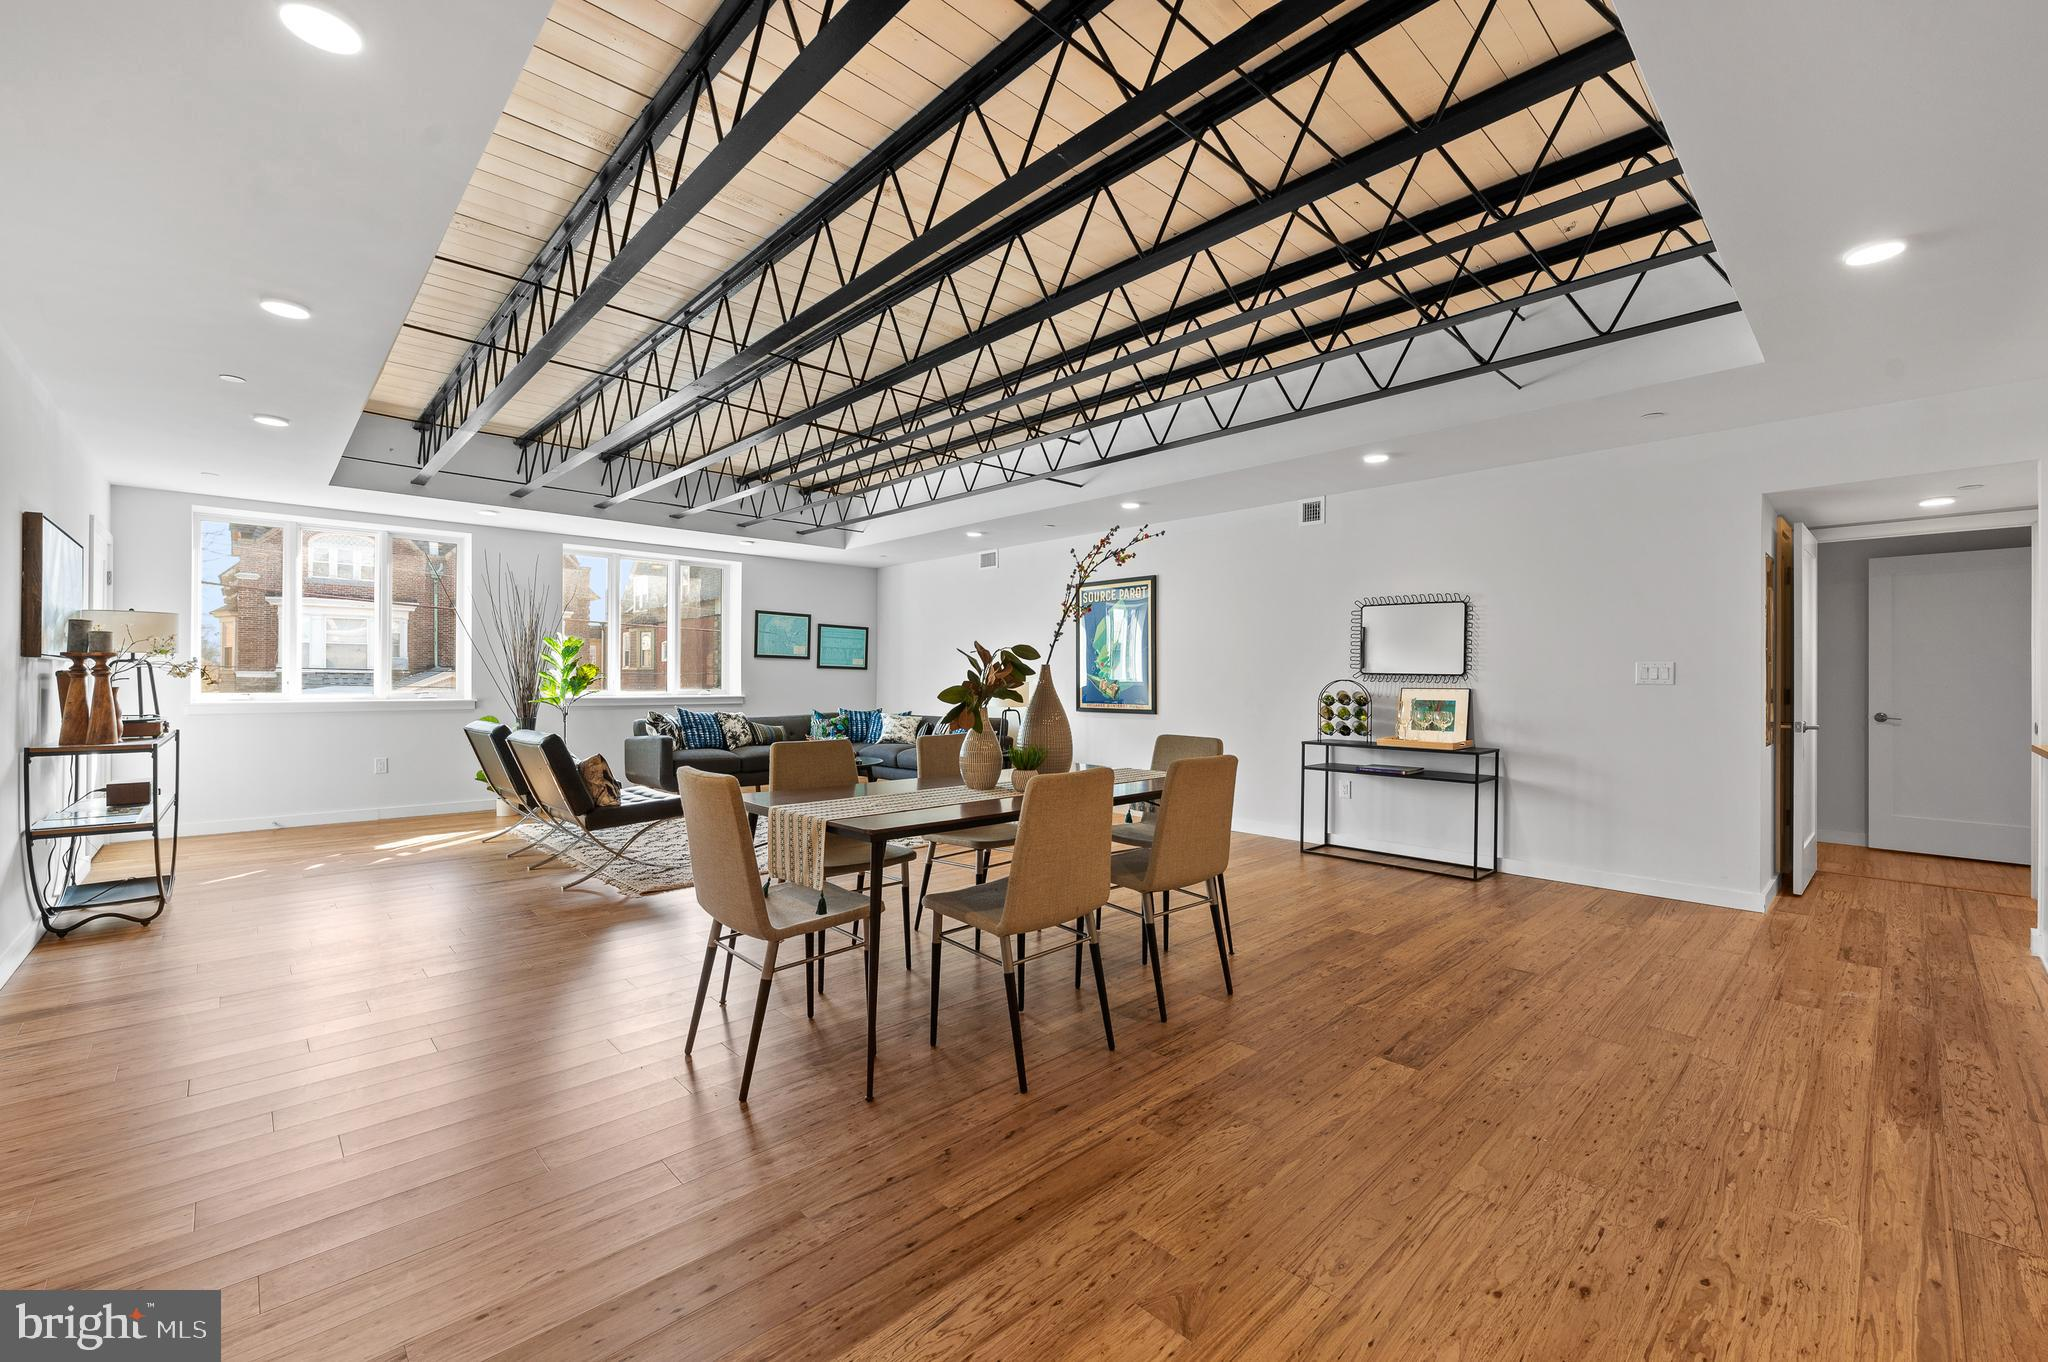 1-Story Condo In East Mount Airy